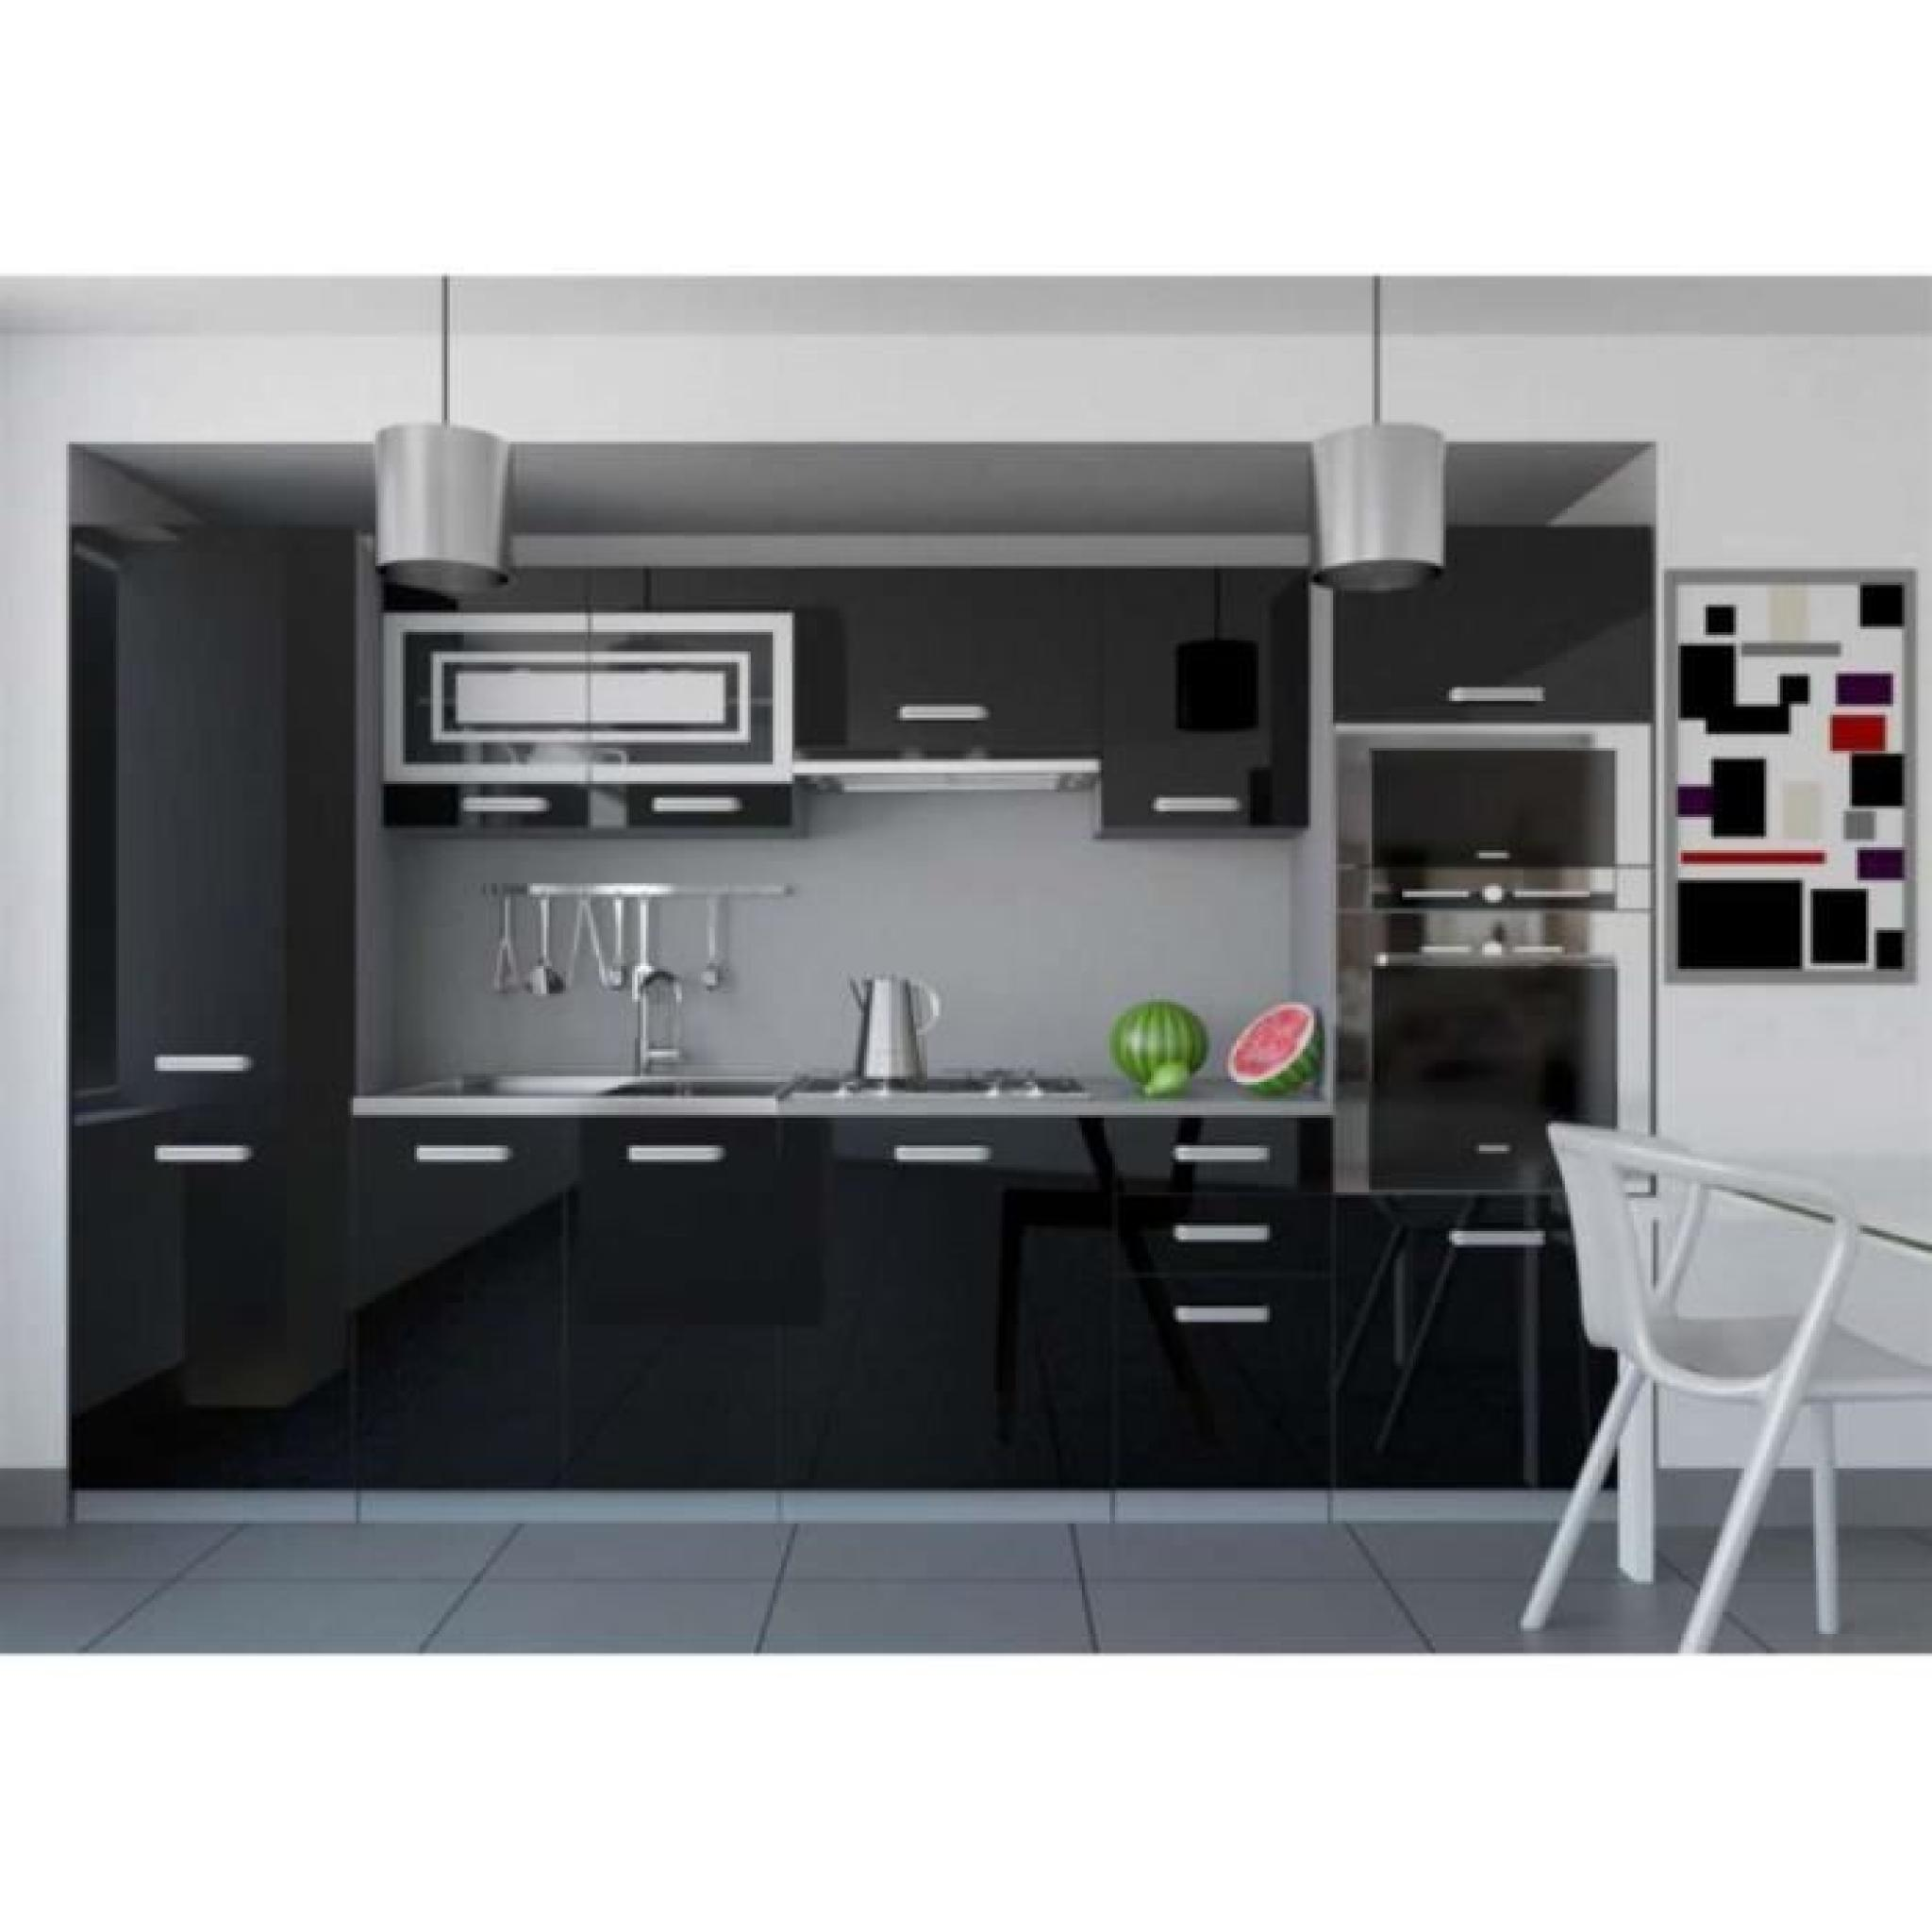 justhome infinity cuisine quip e compl te 300 cm couleur. Black Bedroom Furniture Sets. Home Design Ideas